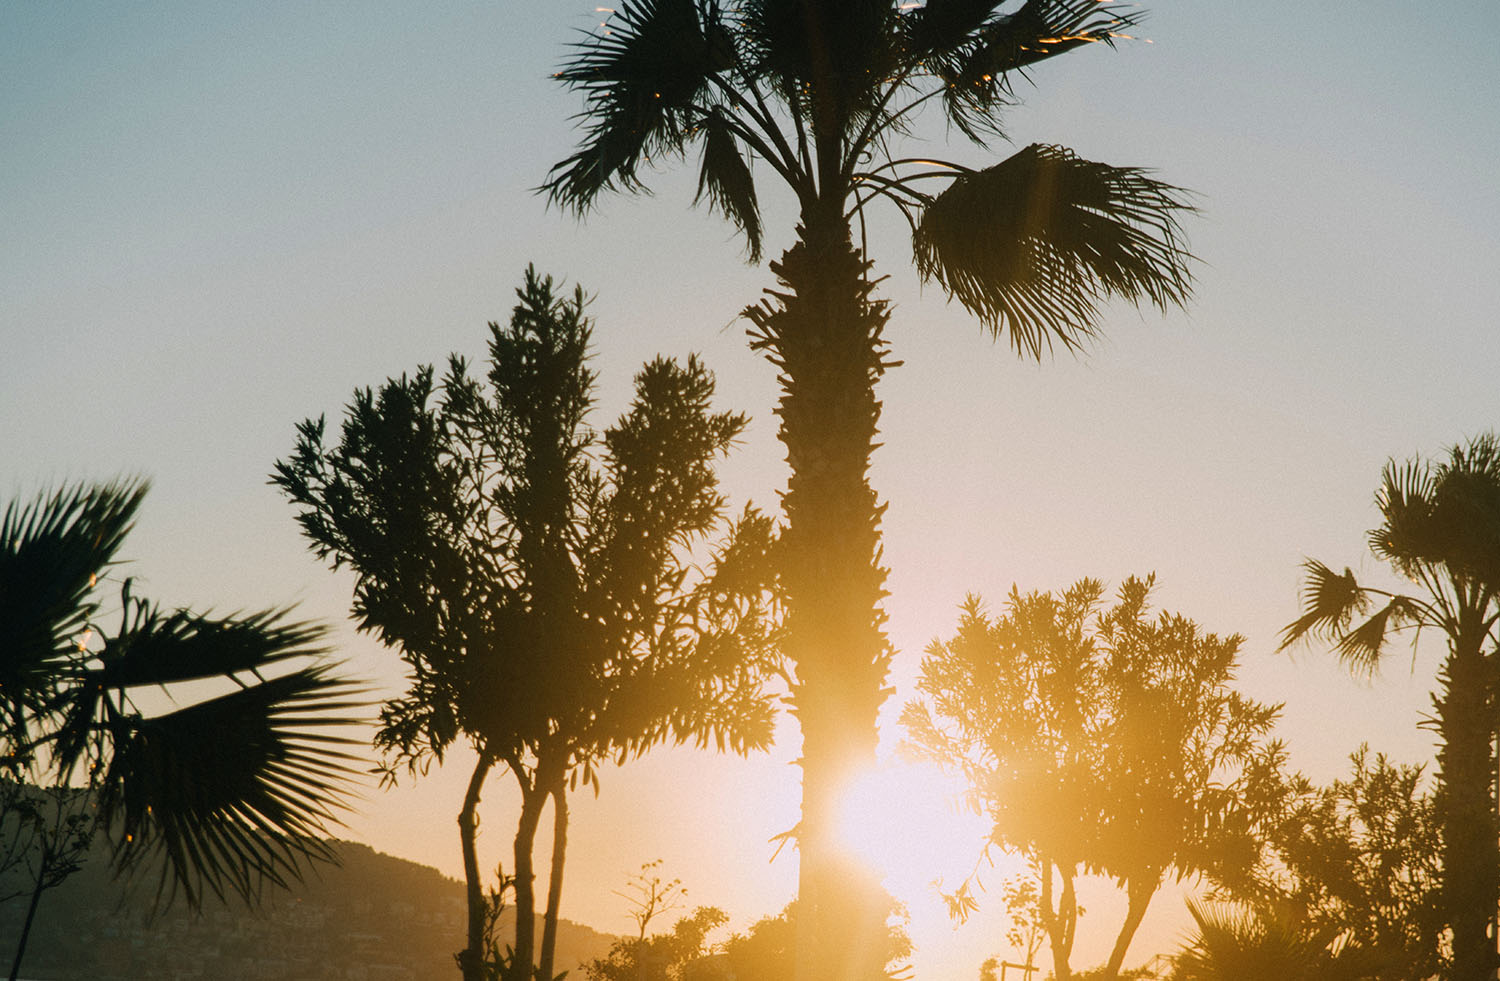 Palm trees against sunset in Alanya, Turkey